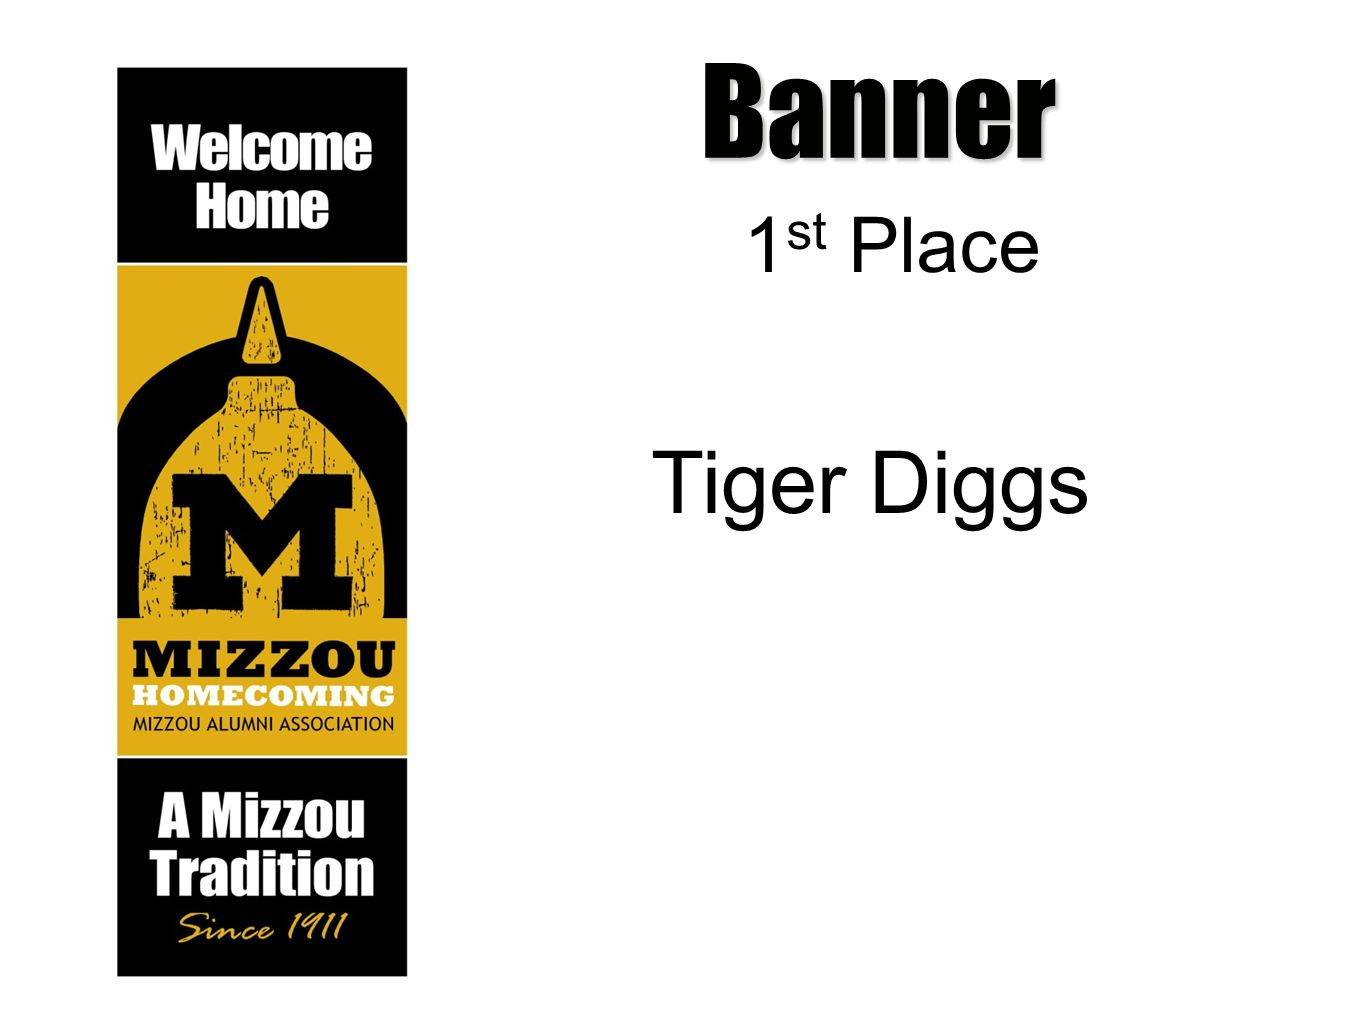 Banner 1 st Place Tiger Diggs